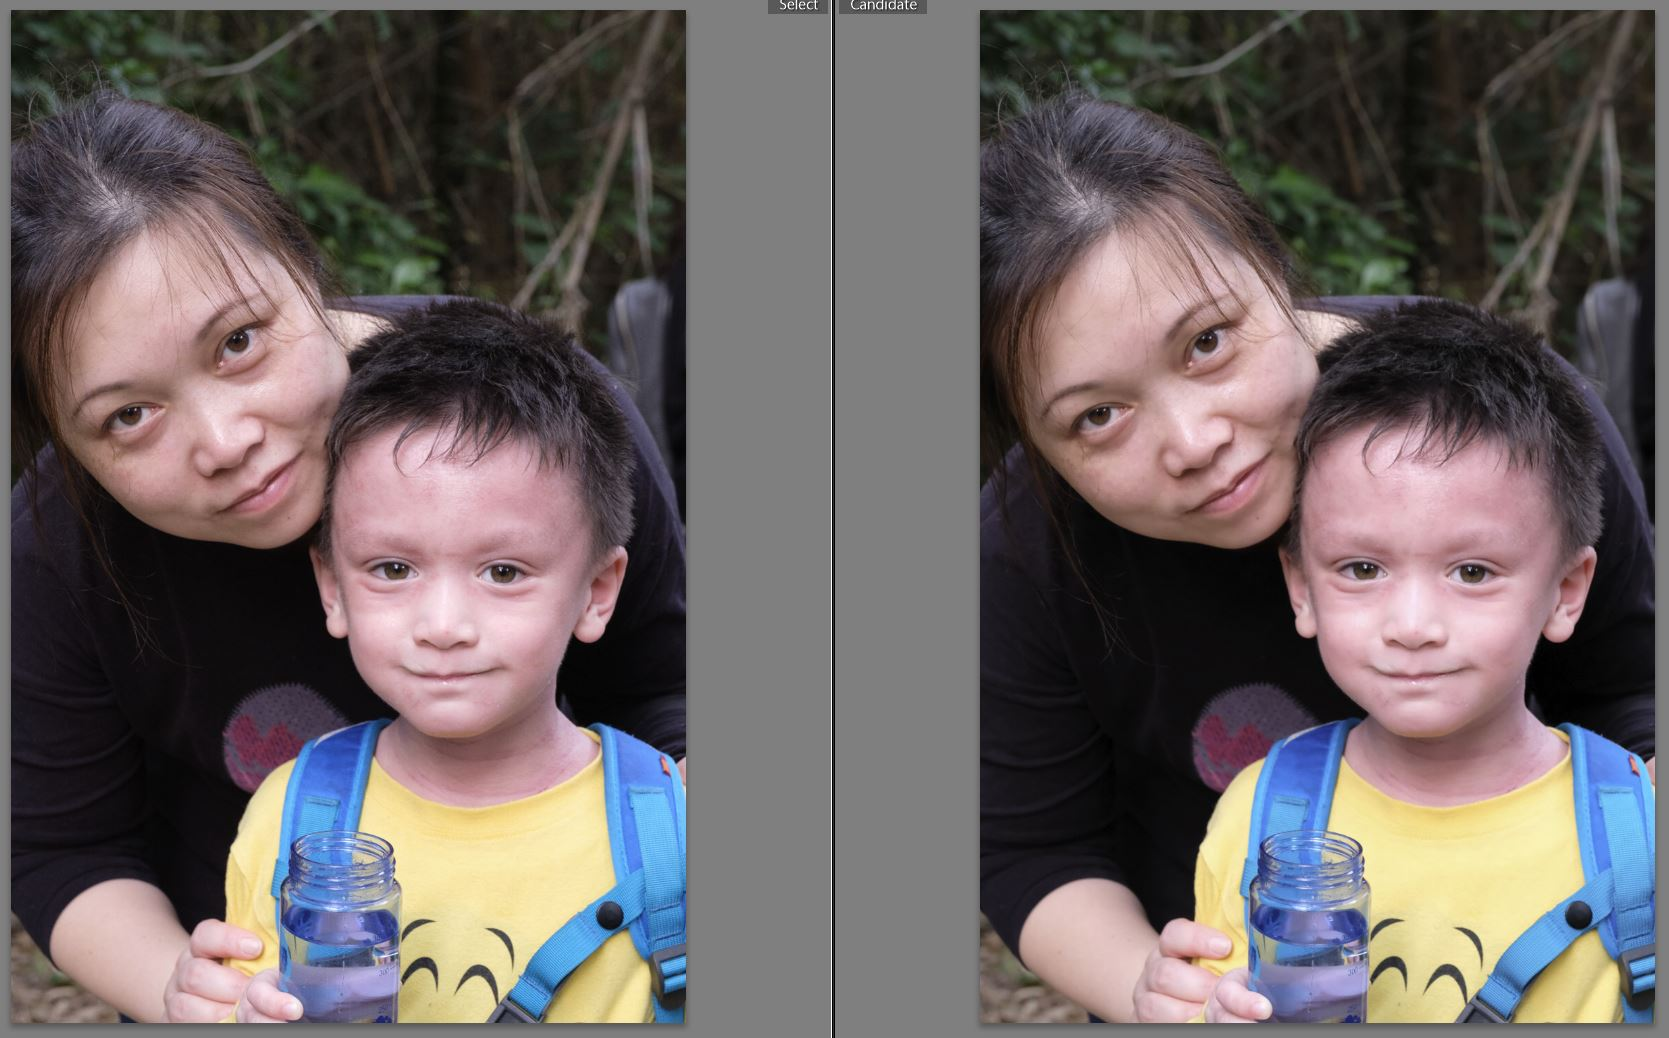 My wife and youngest son. I can't tell which one is jpeg, can you?